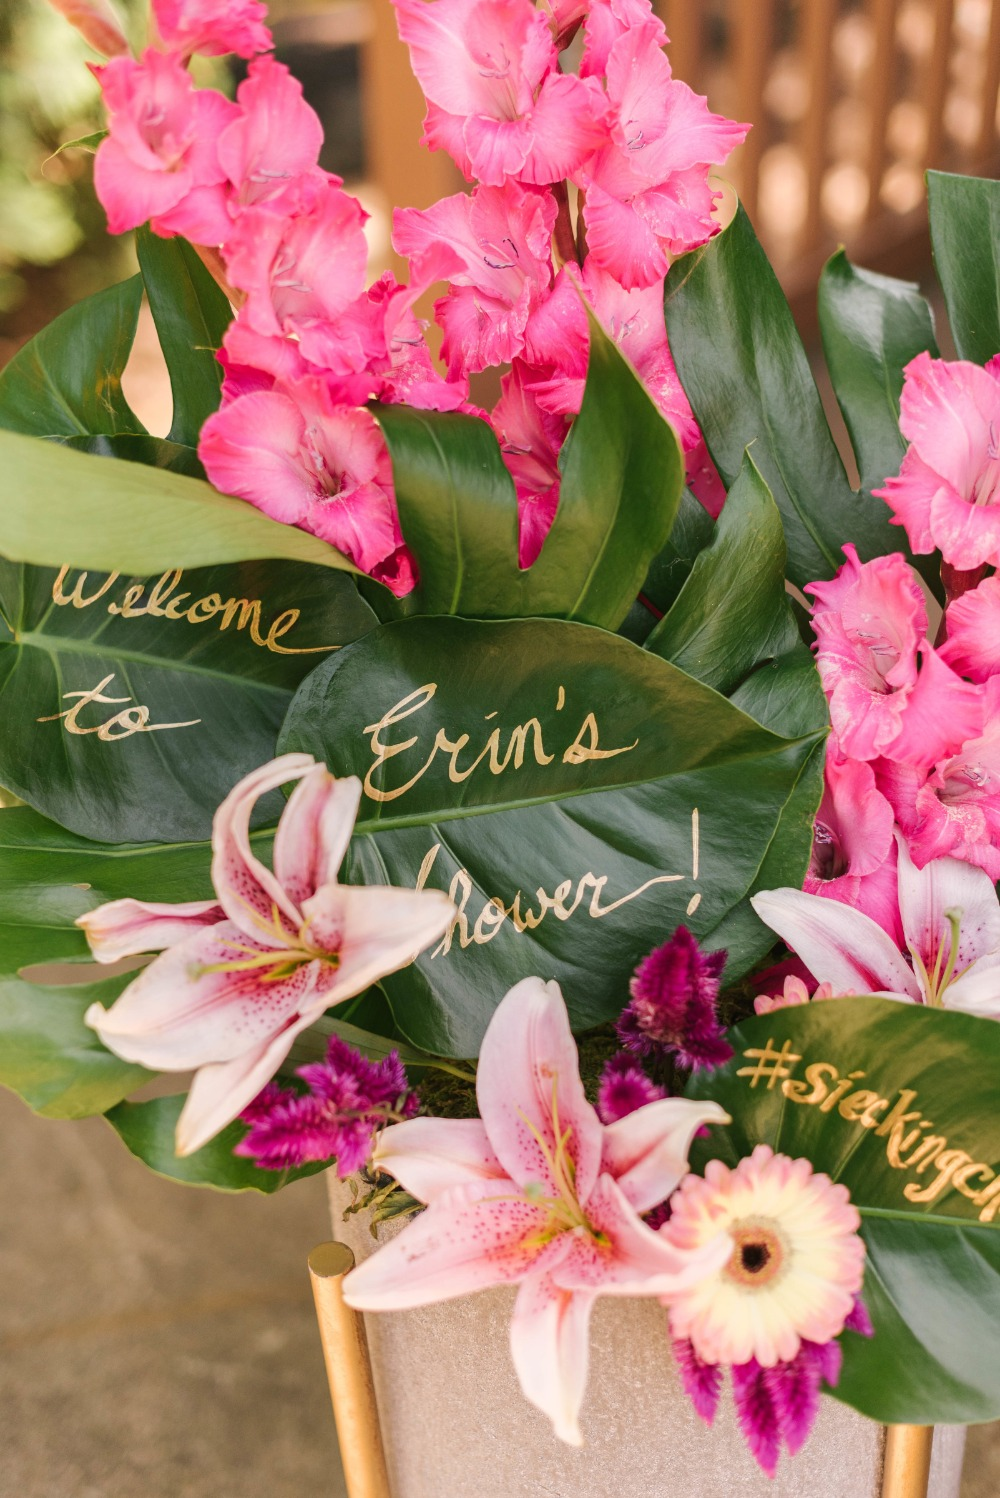 Welcome floral arrangement and tropical bridal shower